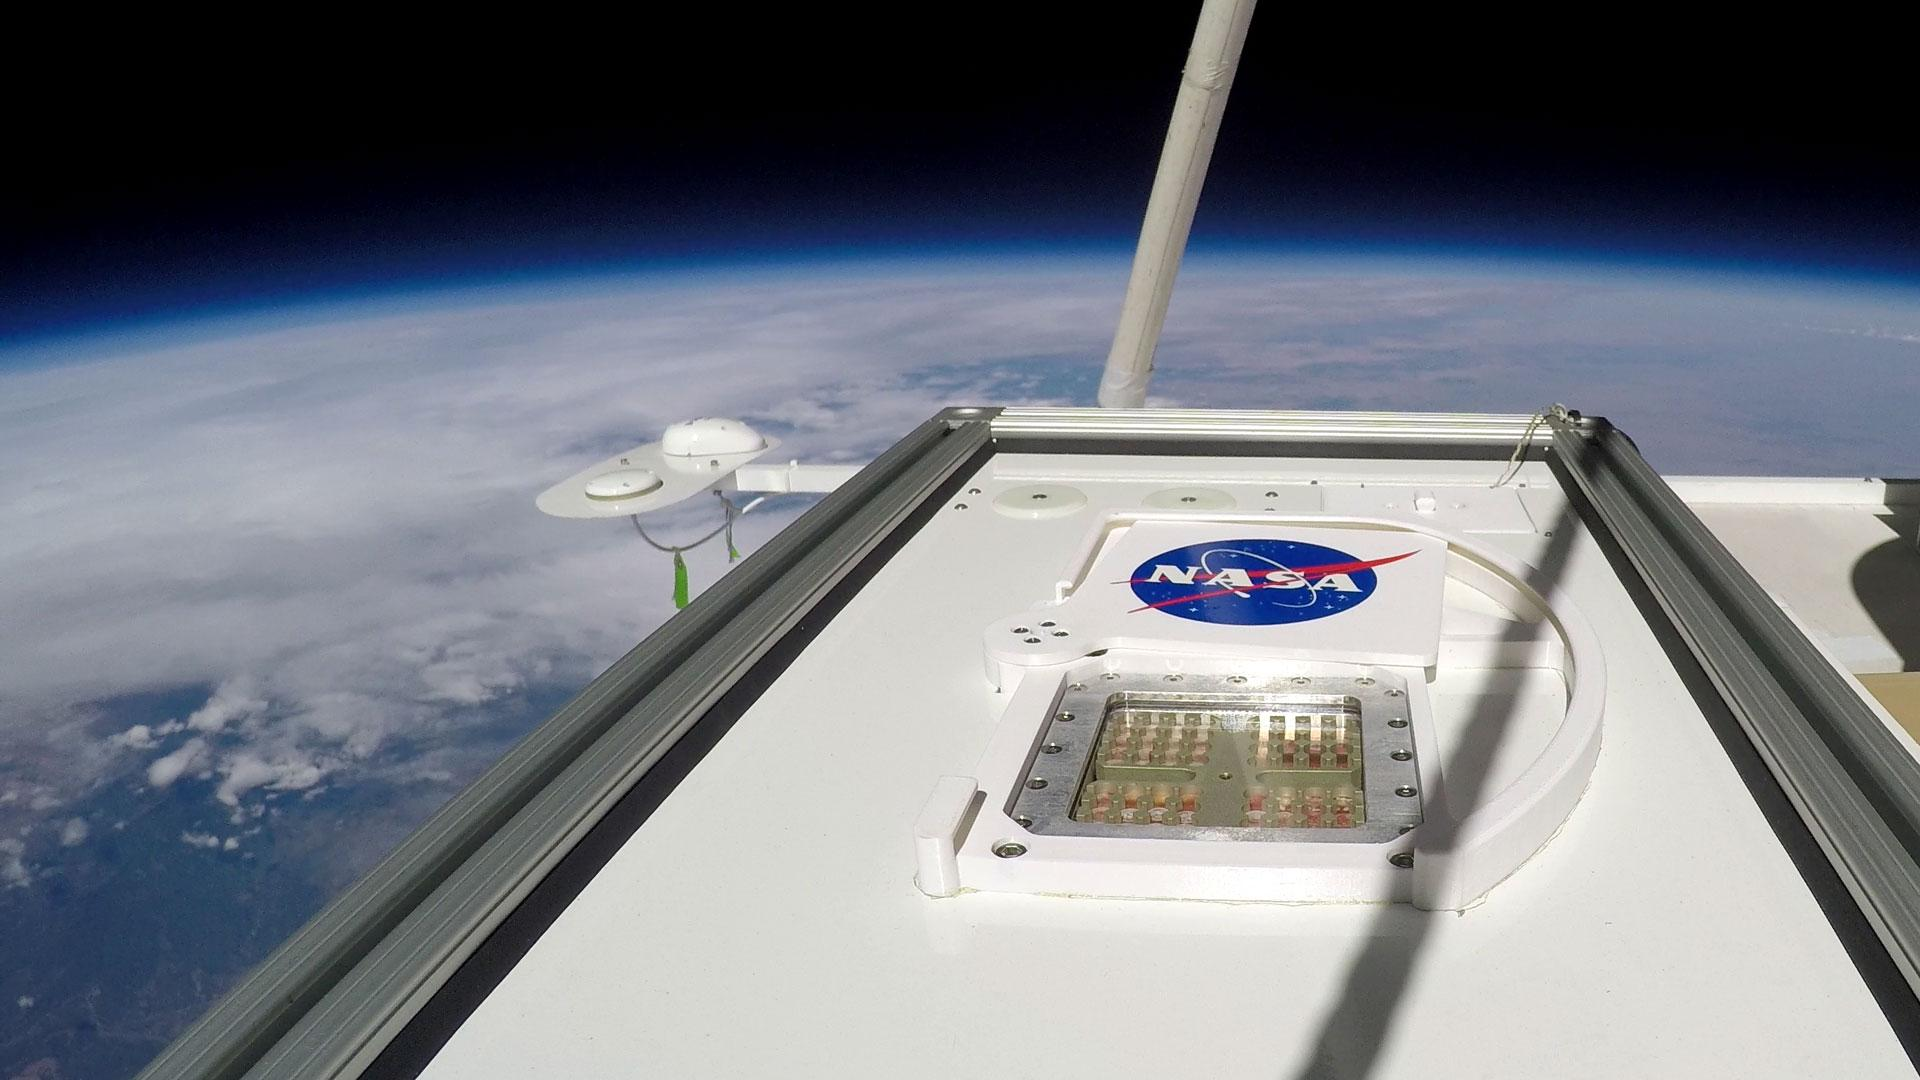 DLR sample carrier containing bacteria and fungi during its nine-hour journey into the stratosphere